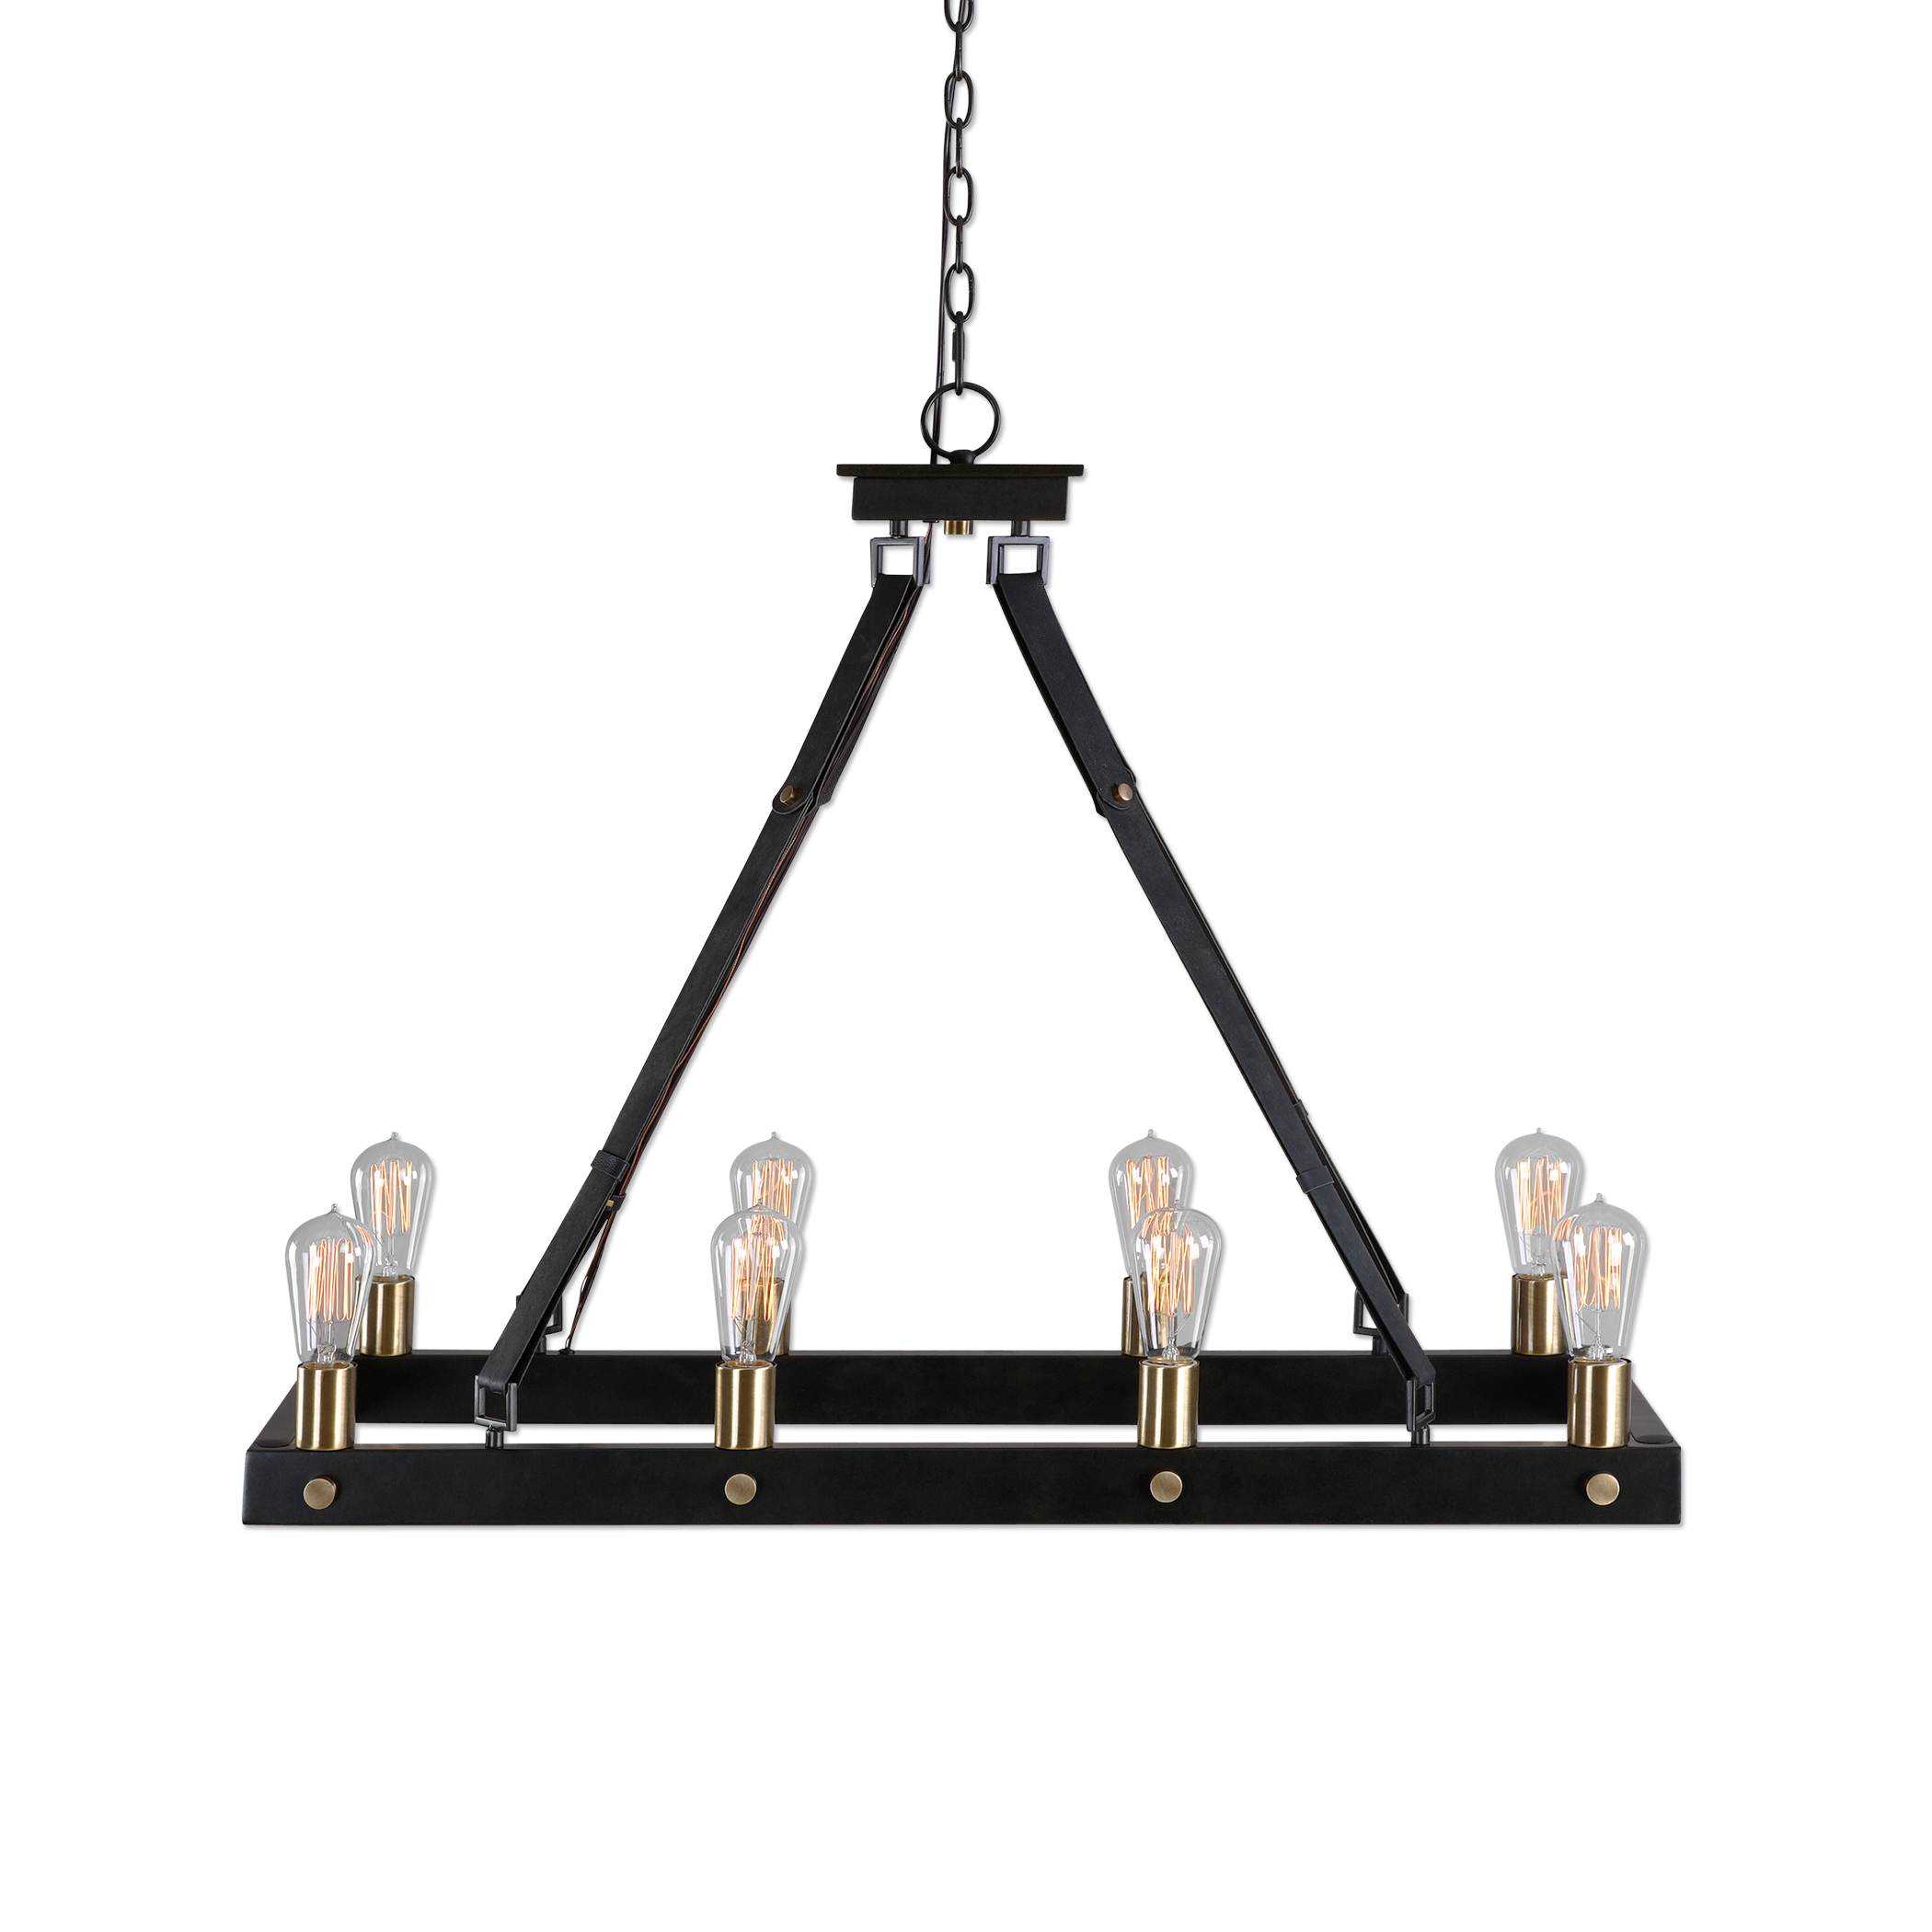 Uttermost Lighting Fixtures Marlow 8 Light Rectangle Chandelier - Item Number: 21279